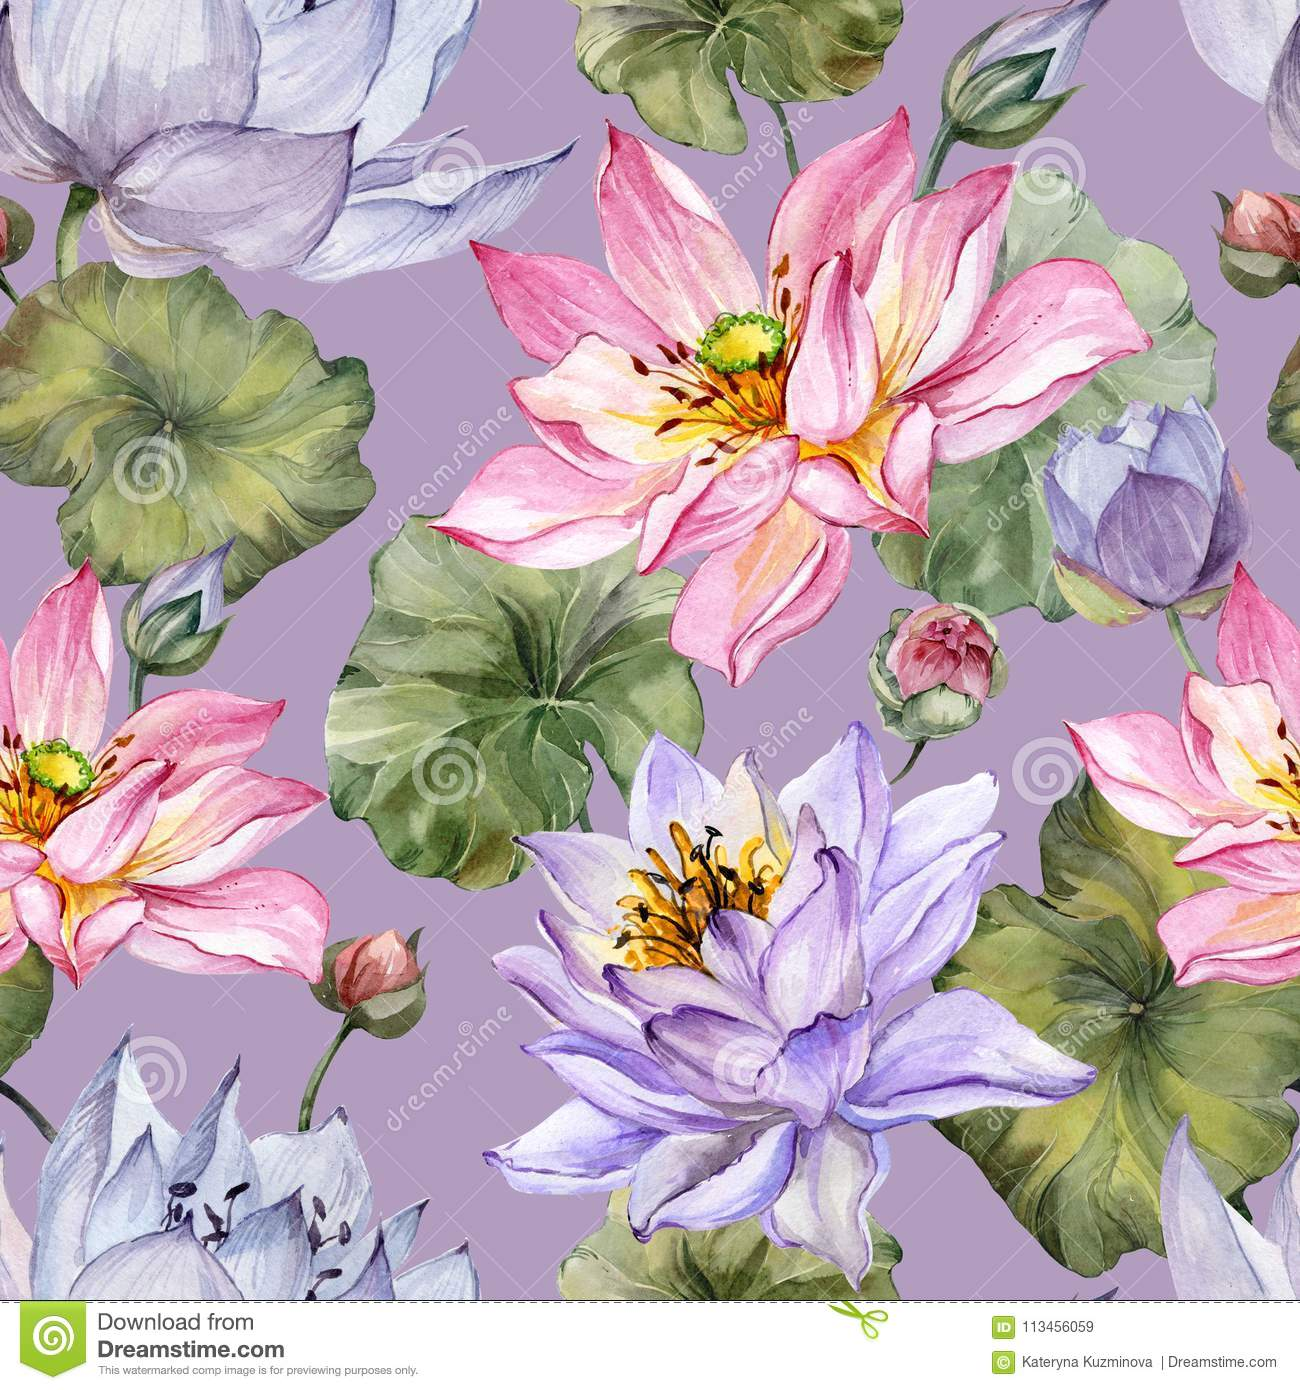 Exotic Pink And Purple Lotus Flowers With Leaves On Lilac Background